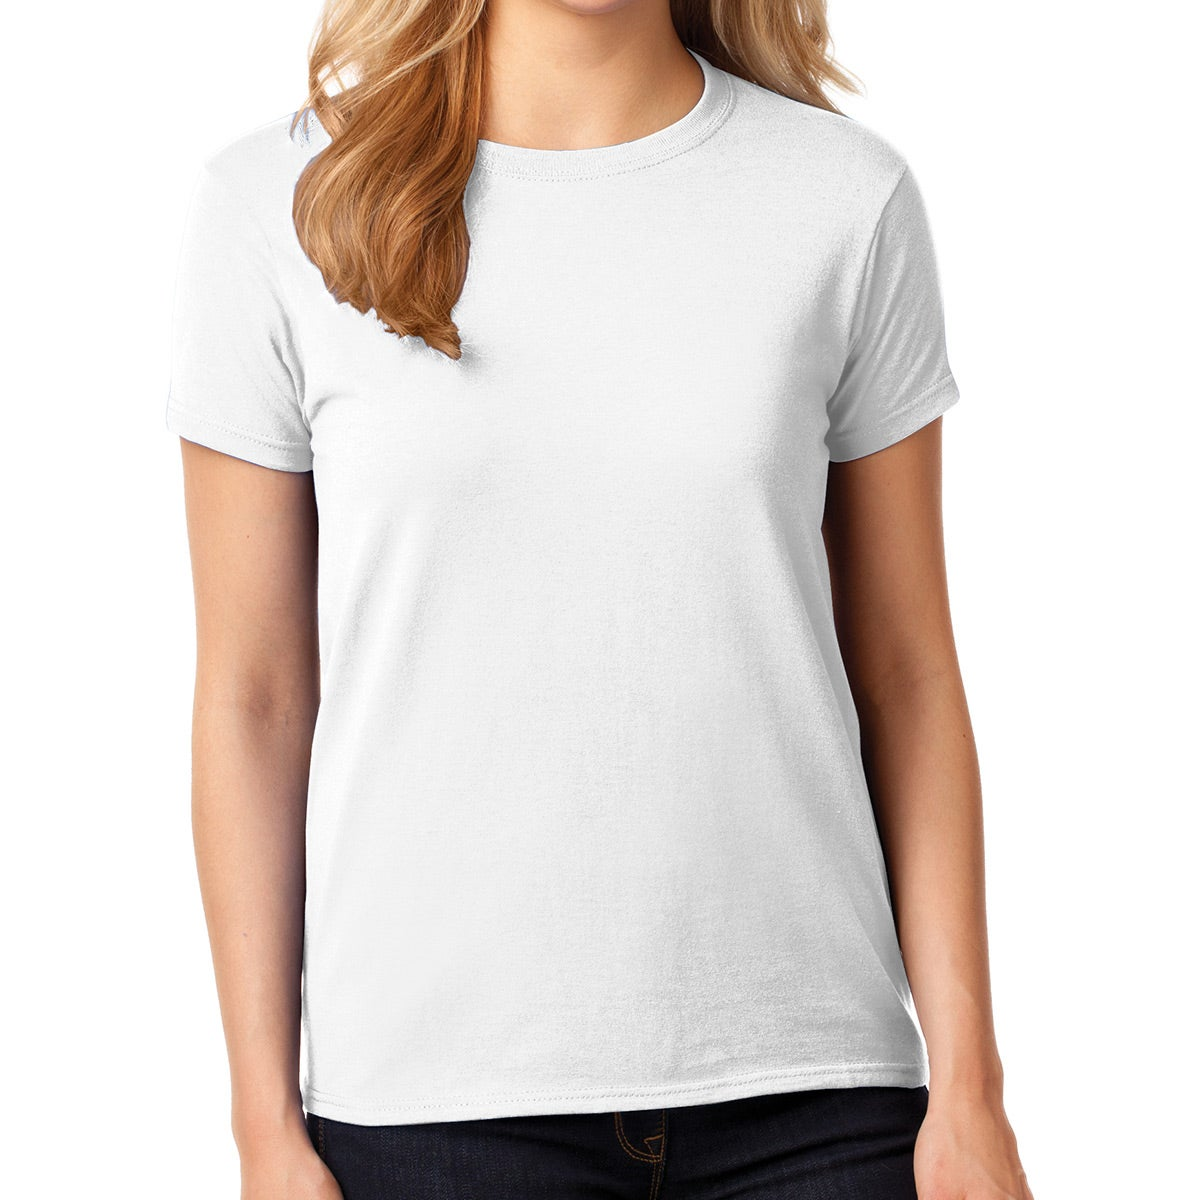 03916991554c CLICK HERE to Order Women's, White Gildan Heavy Cotton T-Shirts ...